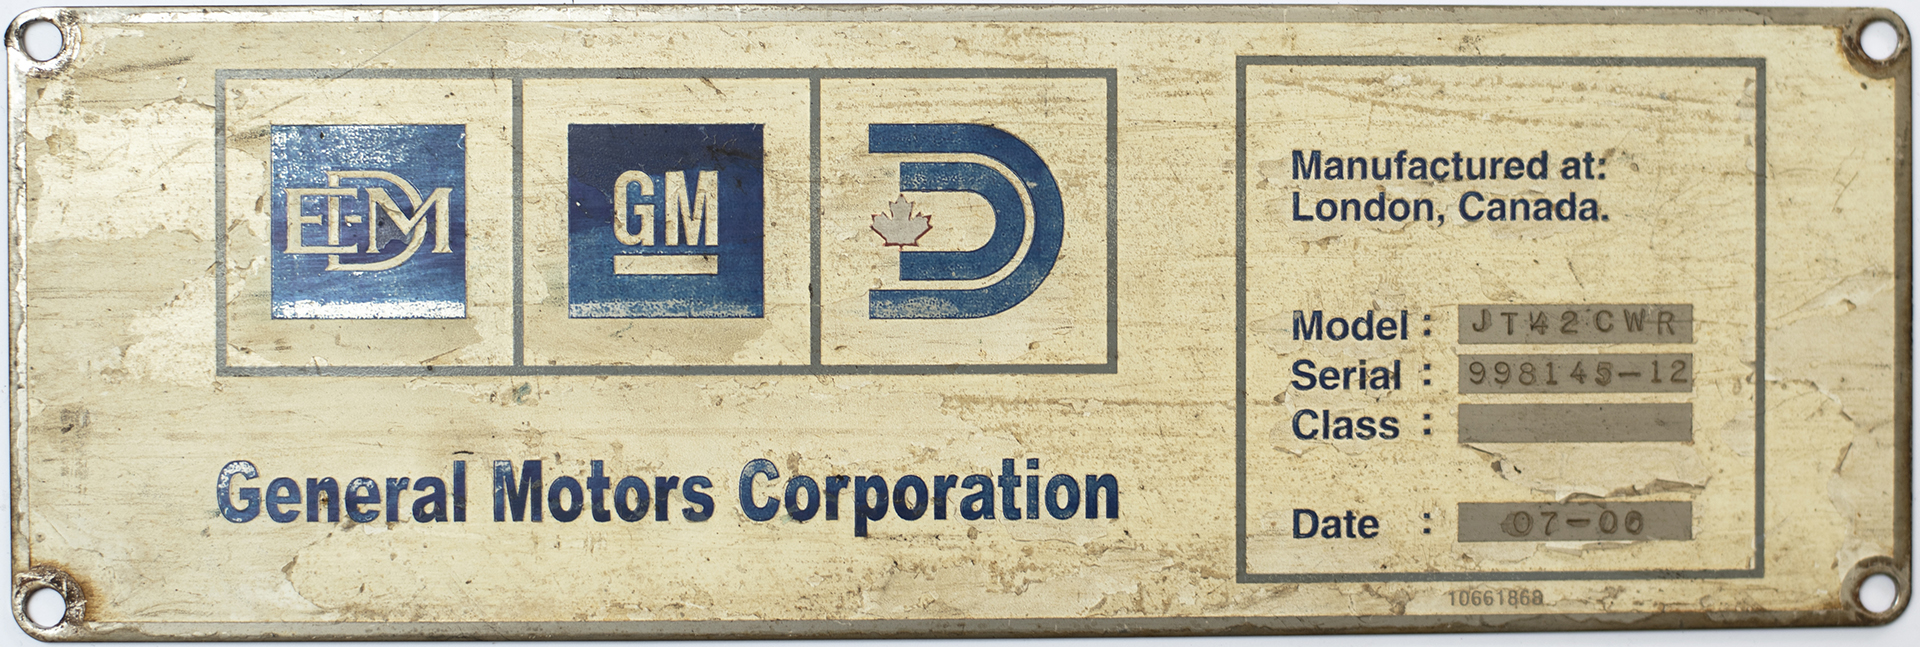 Diesel worksplate GM LOCOMOTIVE GROUP Manufactured at: London, Canada. MODEL JT42 CWR SERIAL